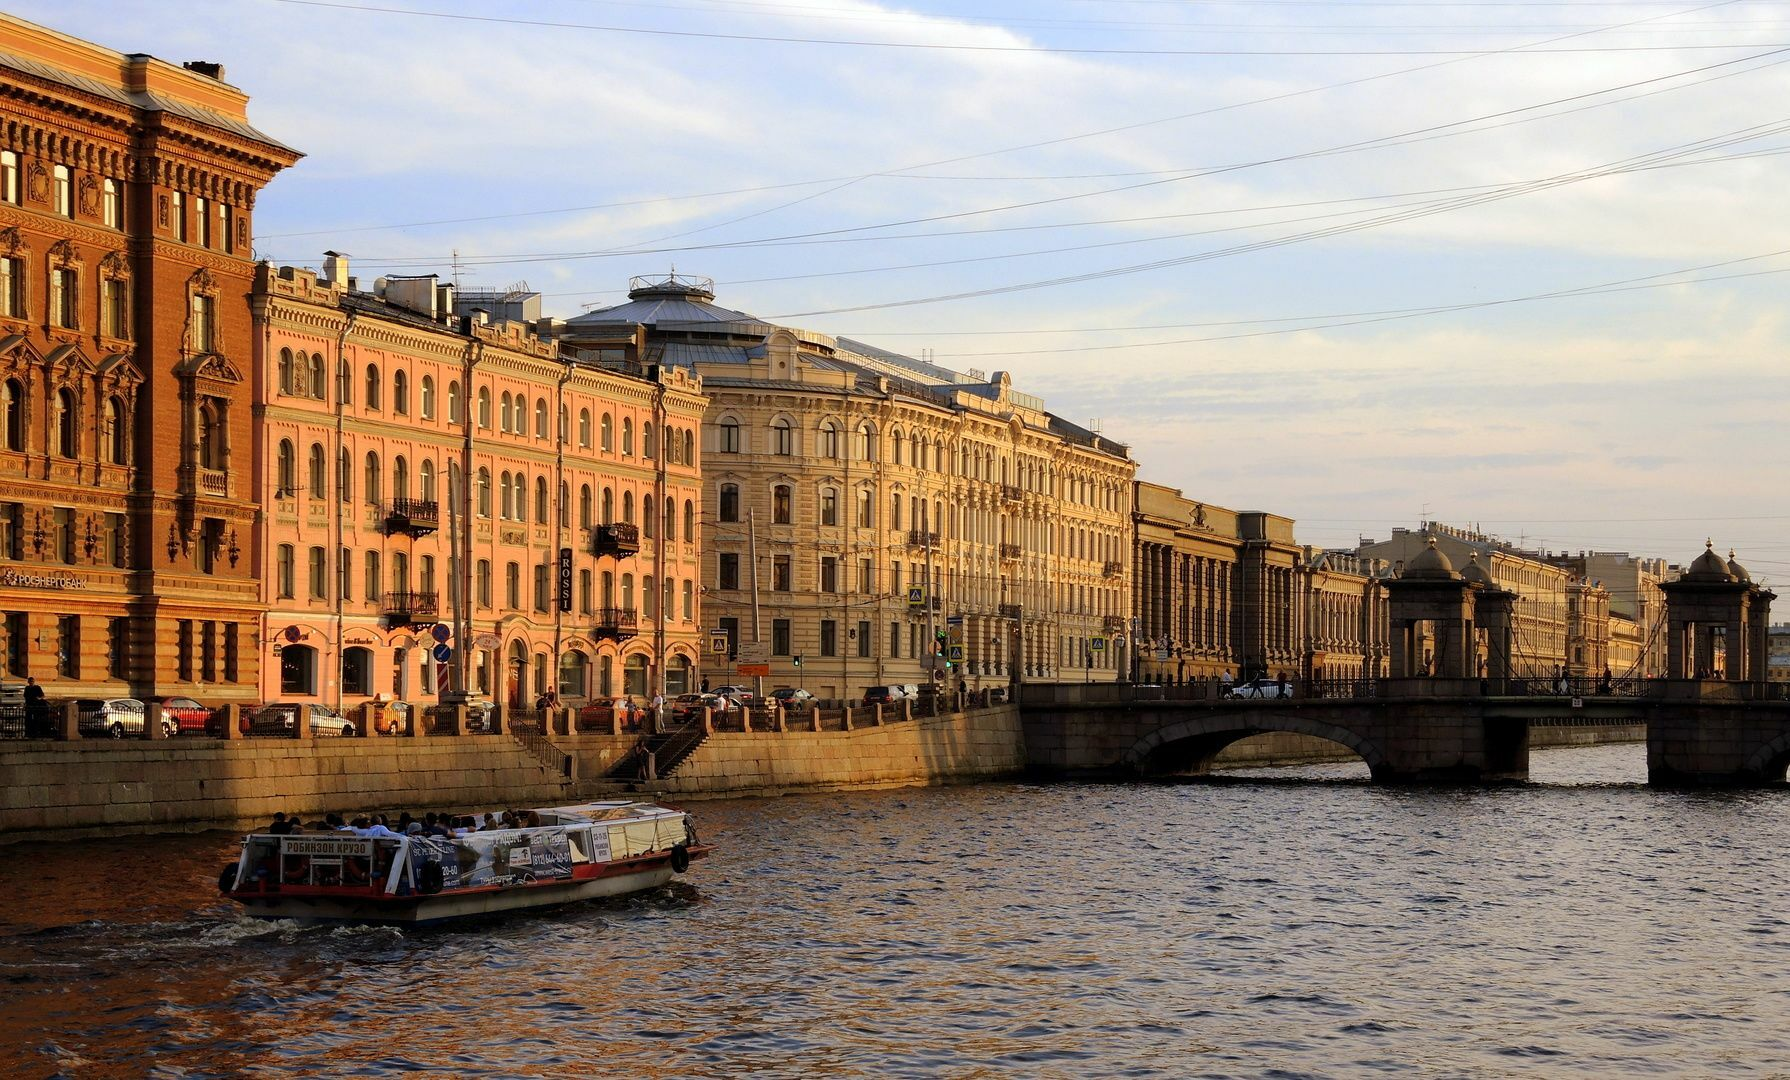 A Virtual Boat Cruise Around St. Petersburg